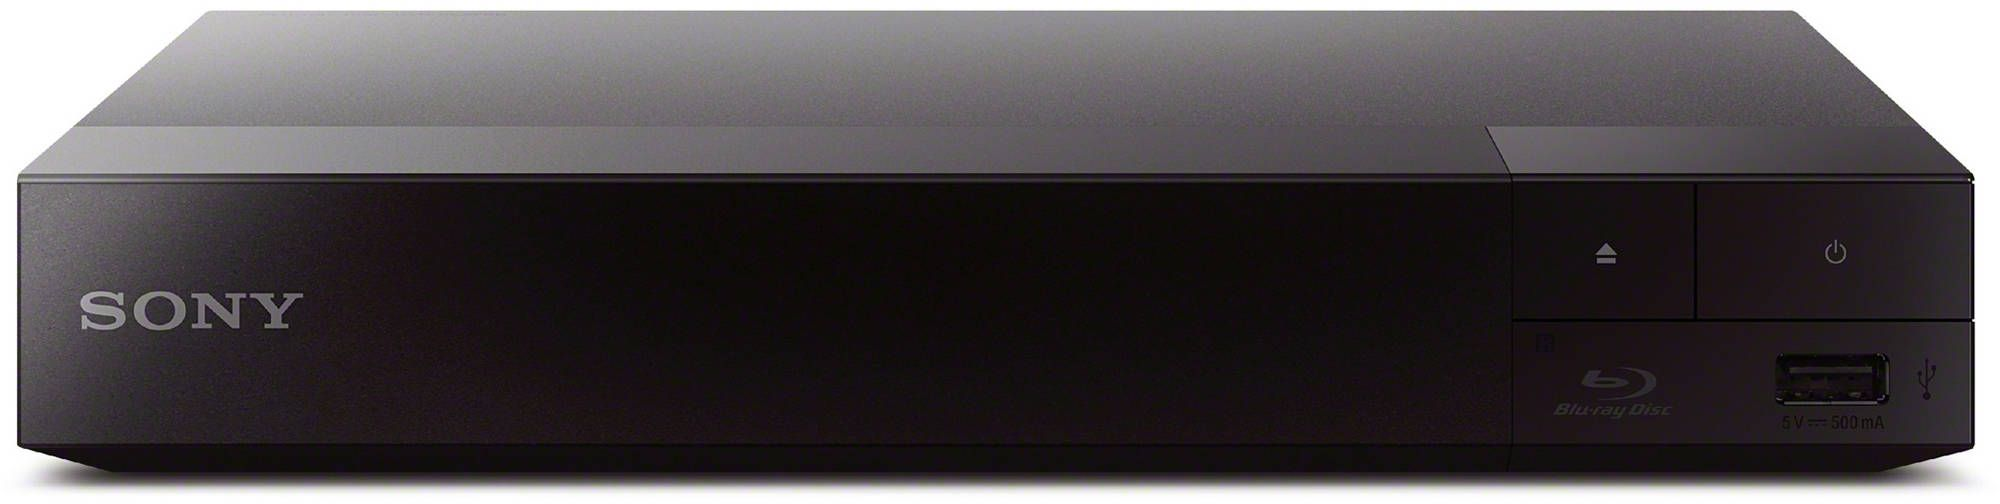 Sony Built In Wi Fi Blu-ray Player-Black-BDP-S3700